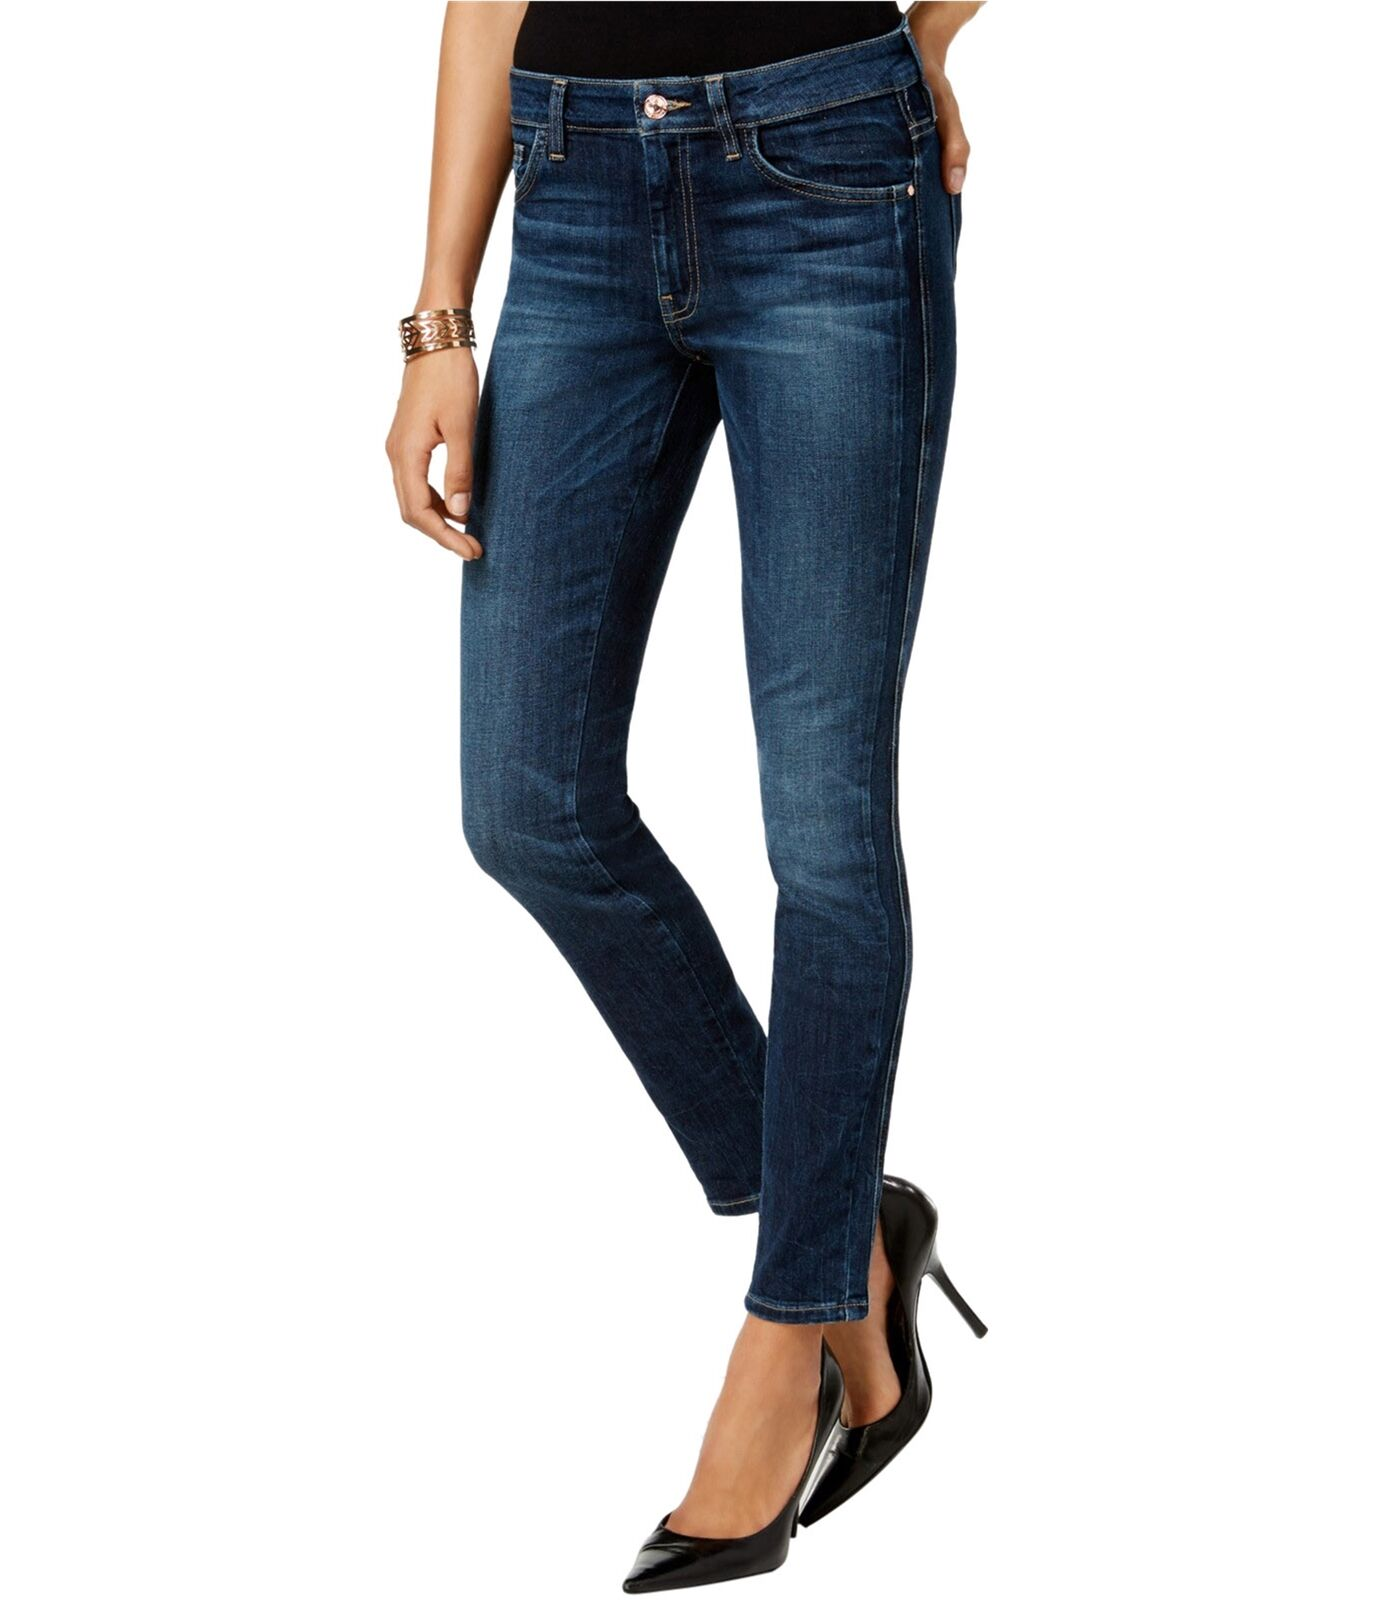 GUESS Womens Whiskering Skinny Fit Jeans